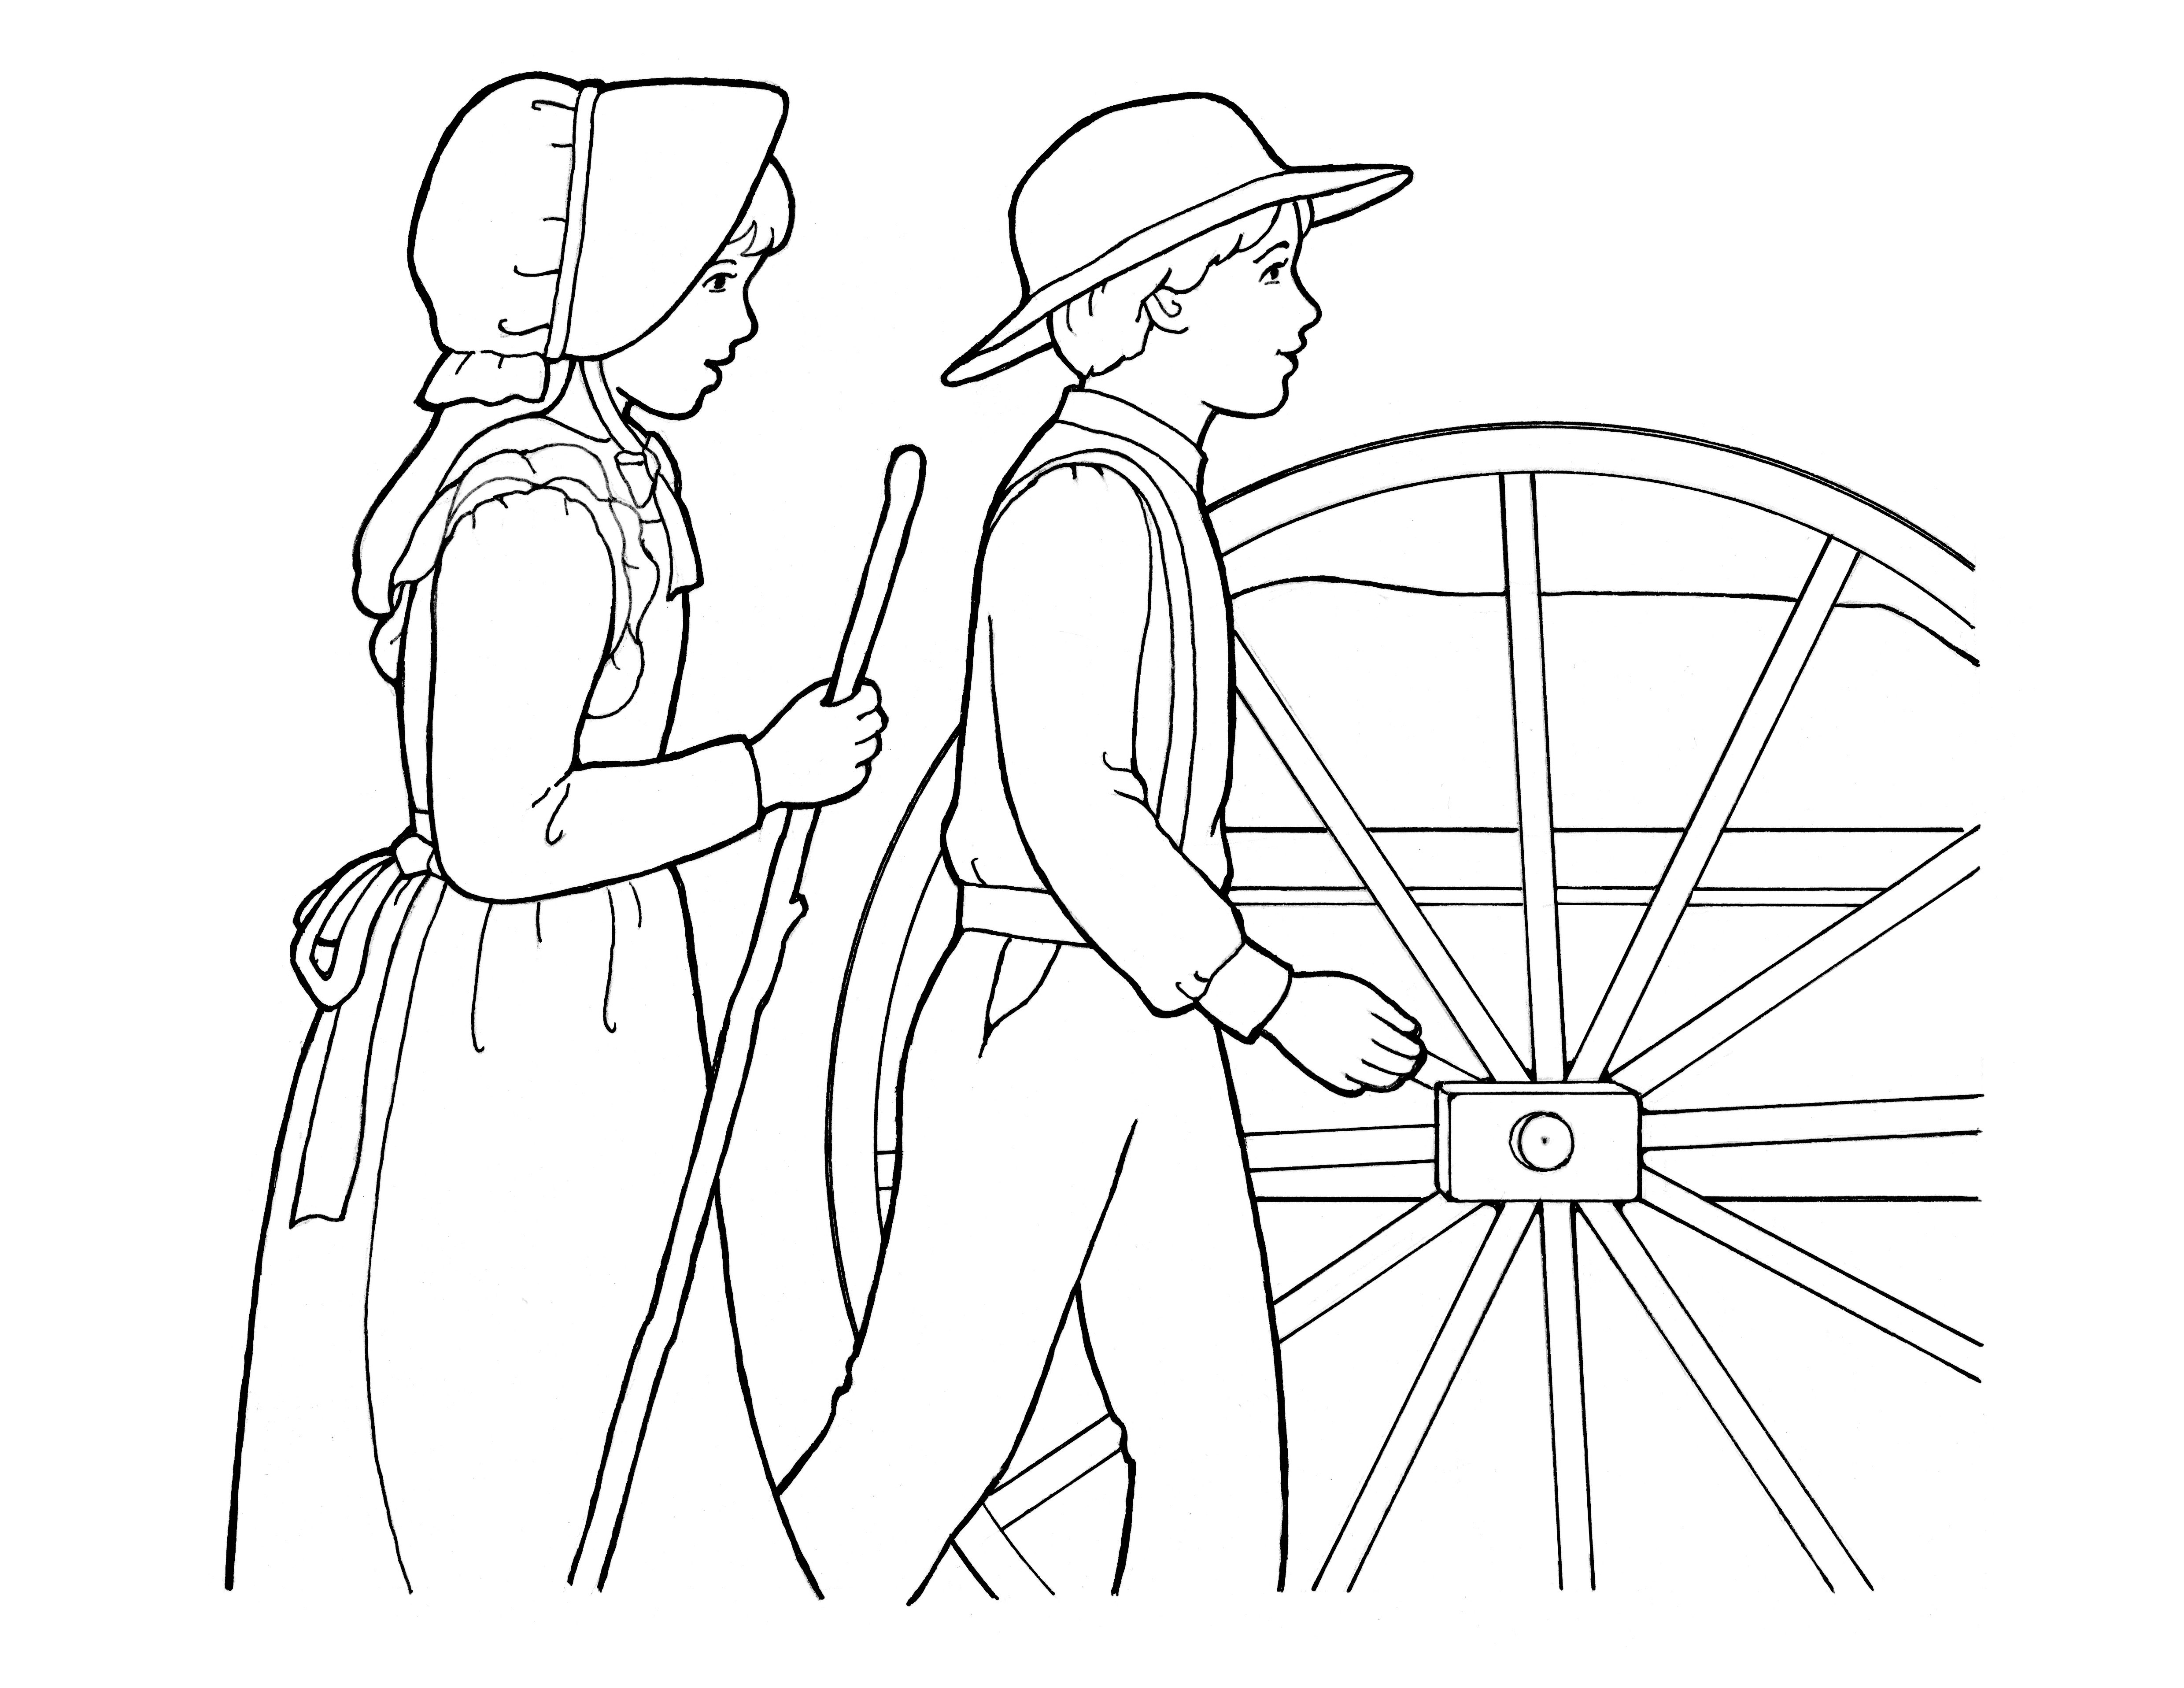 An illustration of a boy and girl pulling a handcart.